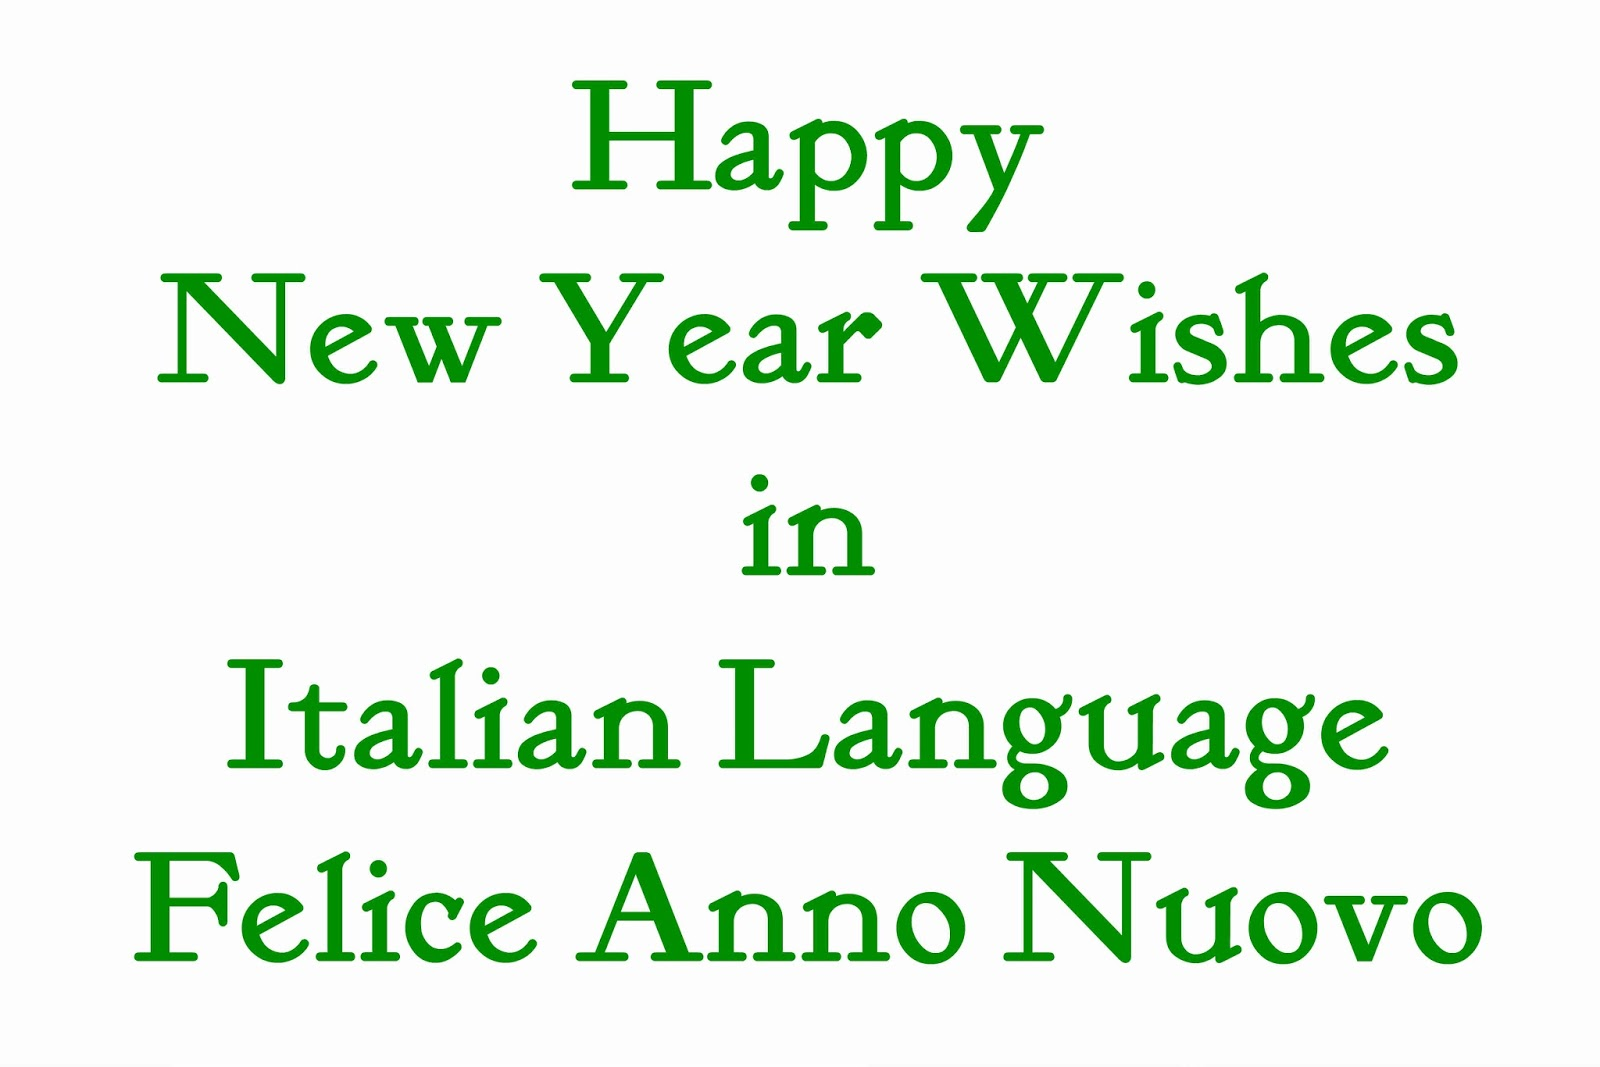 Happy new year wishes in italian language felice anno nuovo with regards to new year festivity in the nation of italy it is seen that it unmistakably takes after the western social custom which happens on 31st m4hsunfo